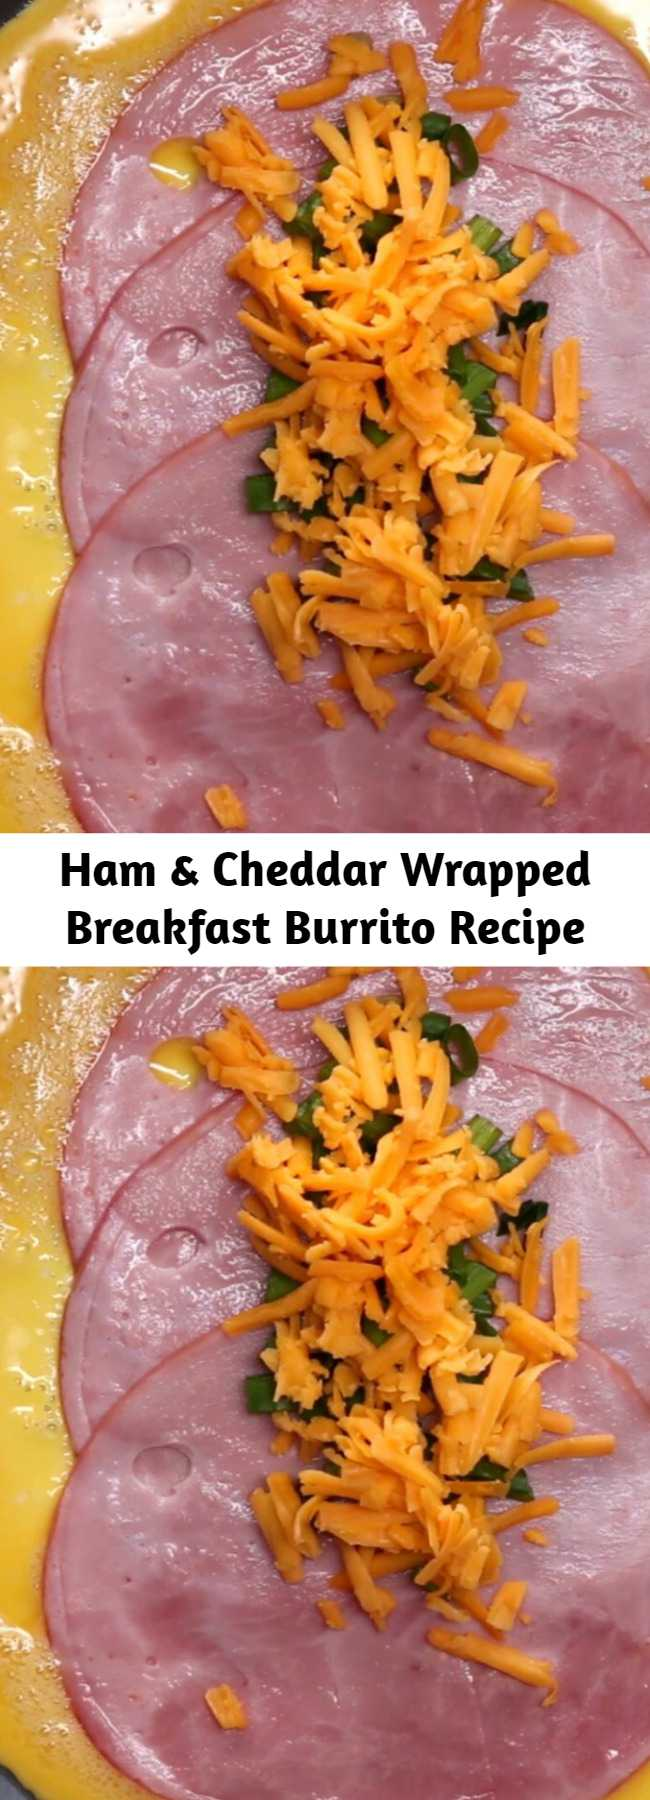 Ham & Cheddar Wrapped Breakfast Burrito Recipe - You can make these freezable breakfast burritos in minutes. A delicious breakfast to go.